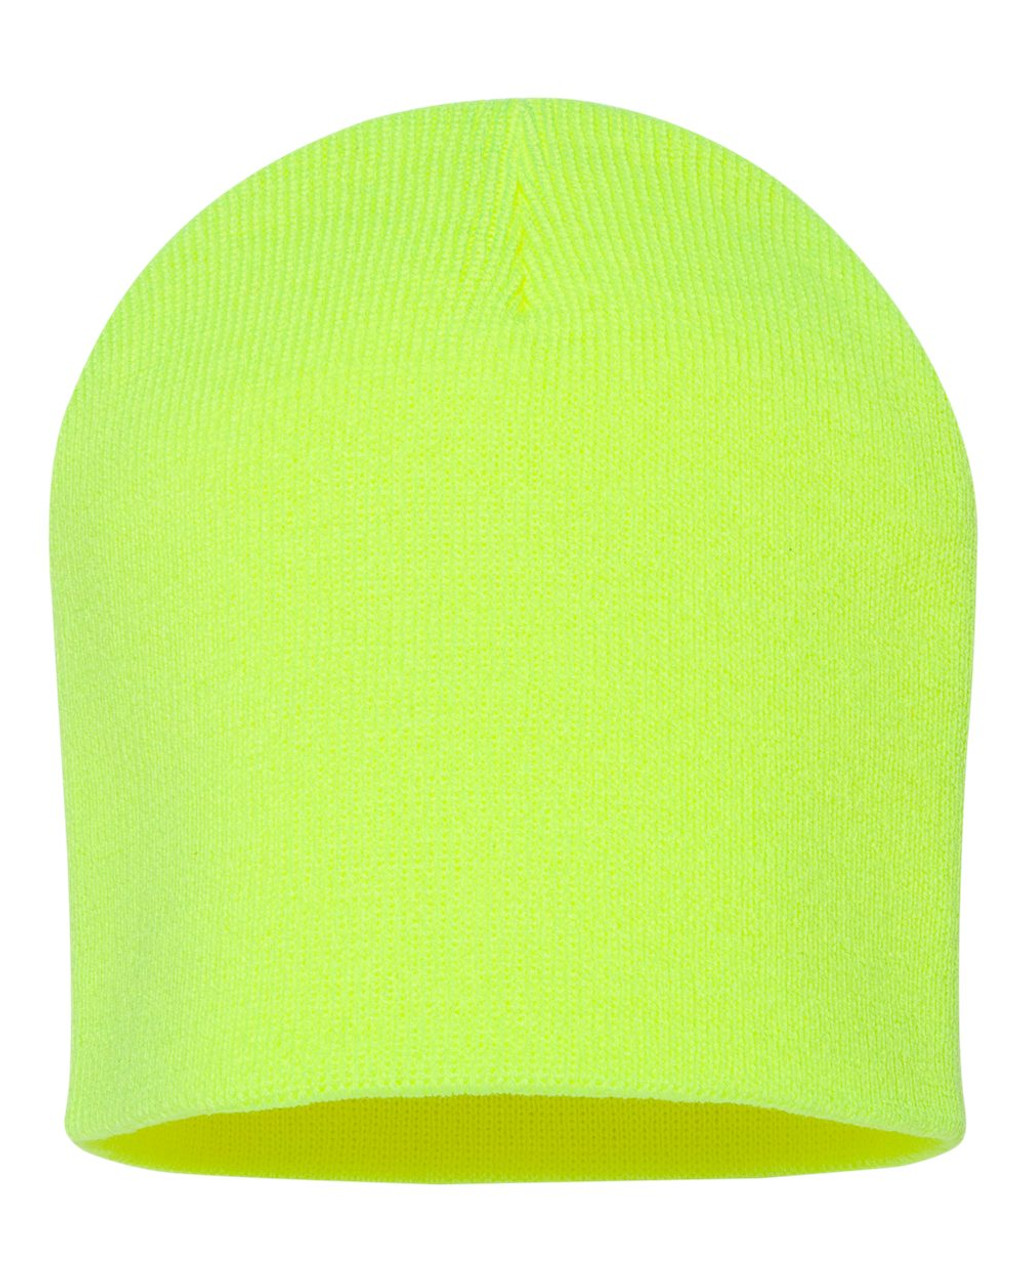 "Neon Yellow - SP08 Sportsman Acrylic Knit 8"" Toque 